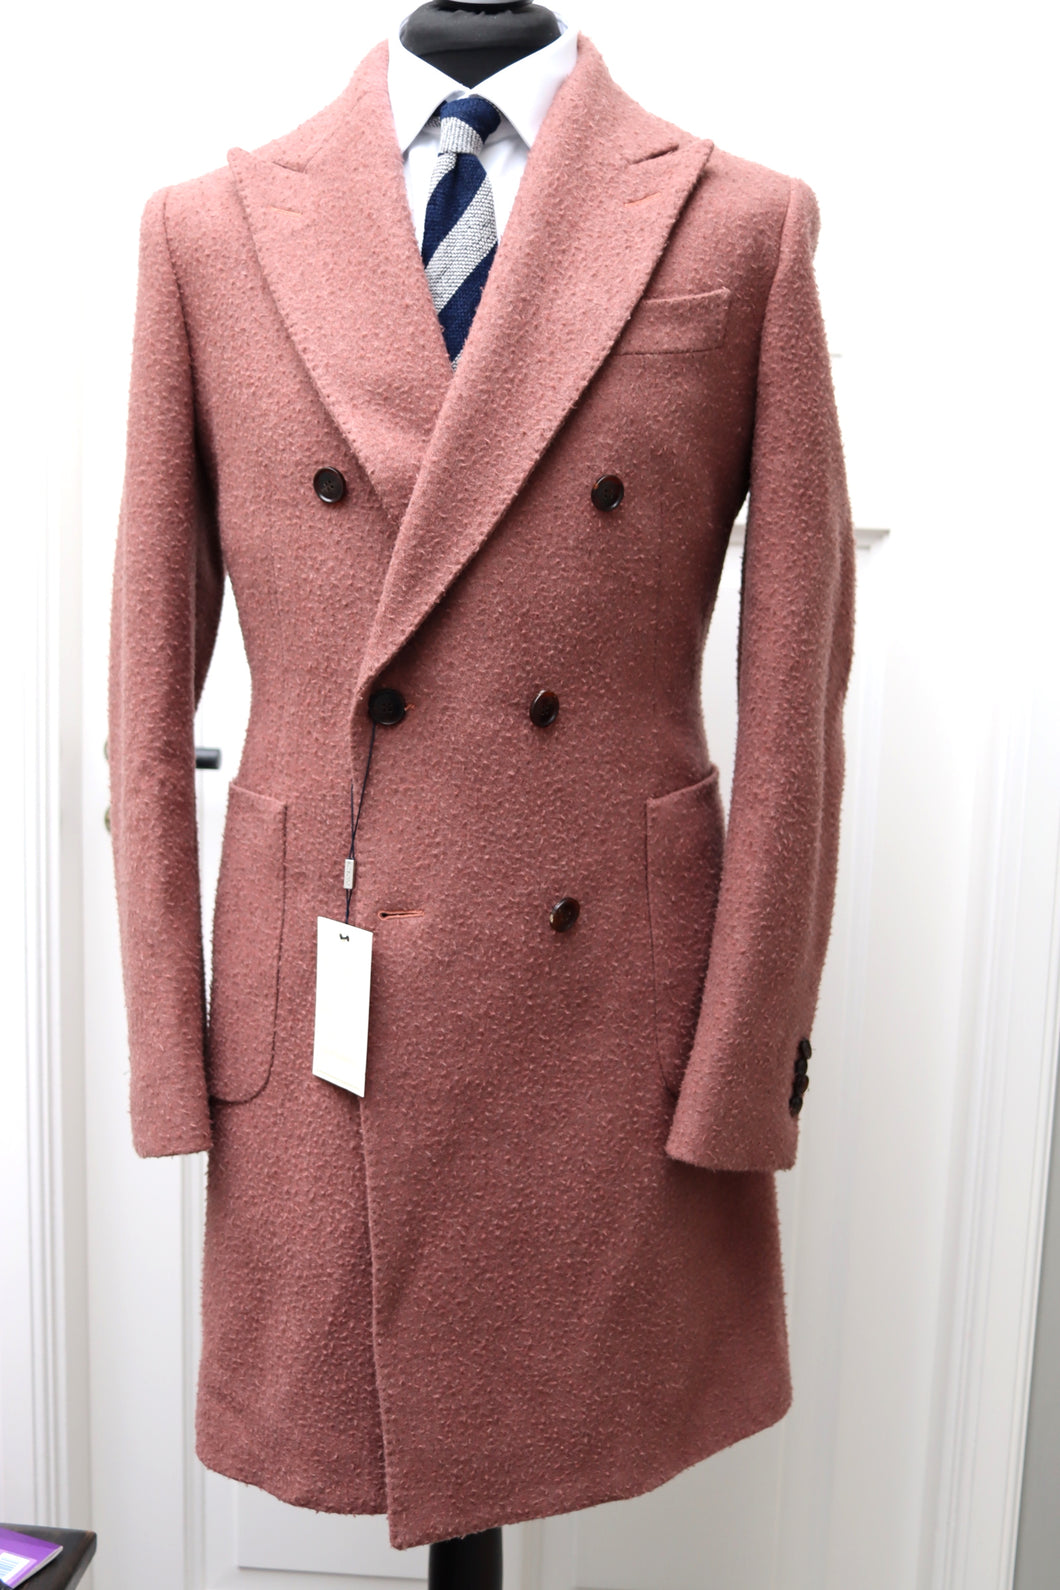 USED SUITSUPPLY LAVELLO Pink Wool/Cashmere DB Coat - Size 38R